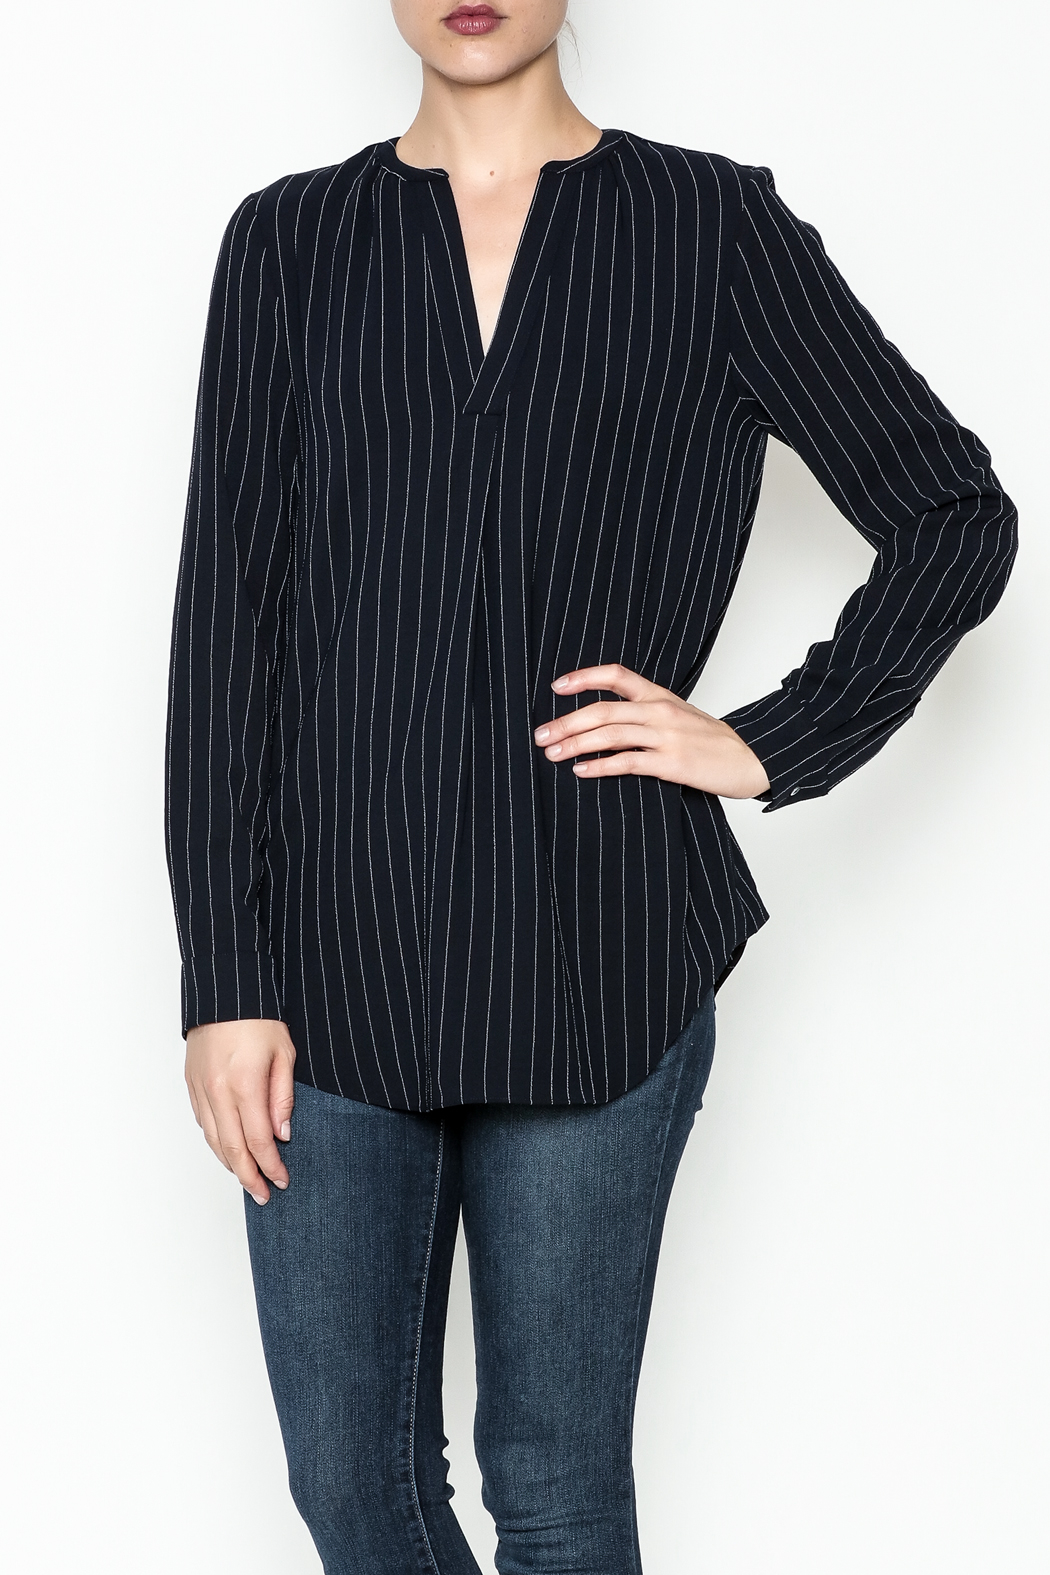 WREN & WILLA Pinstripe V Neck Blouse - Main Image